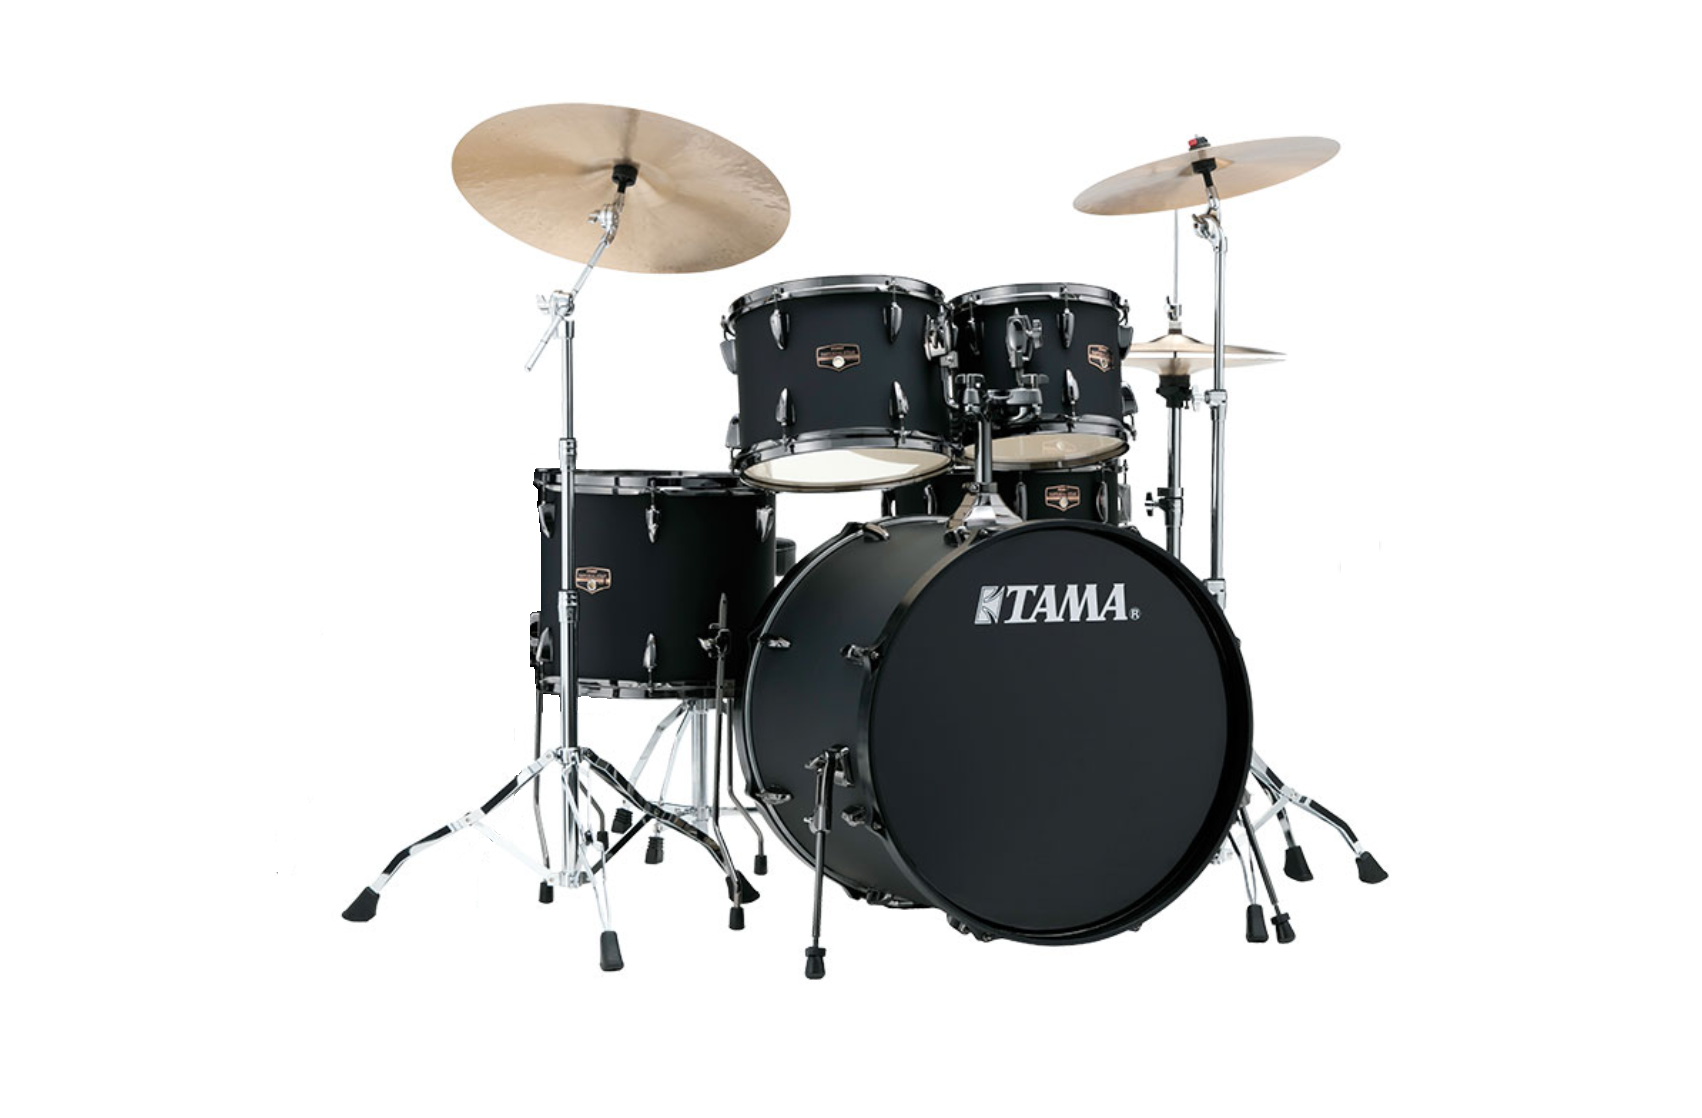 Tama Imperialstar Drum Kit with Stands and Cymbals, Black Out Black